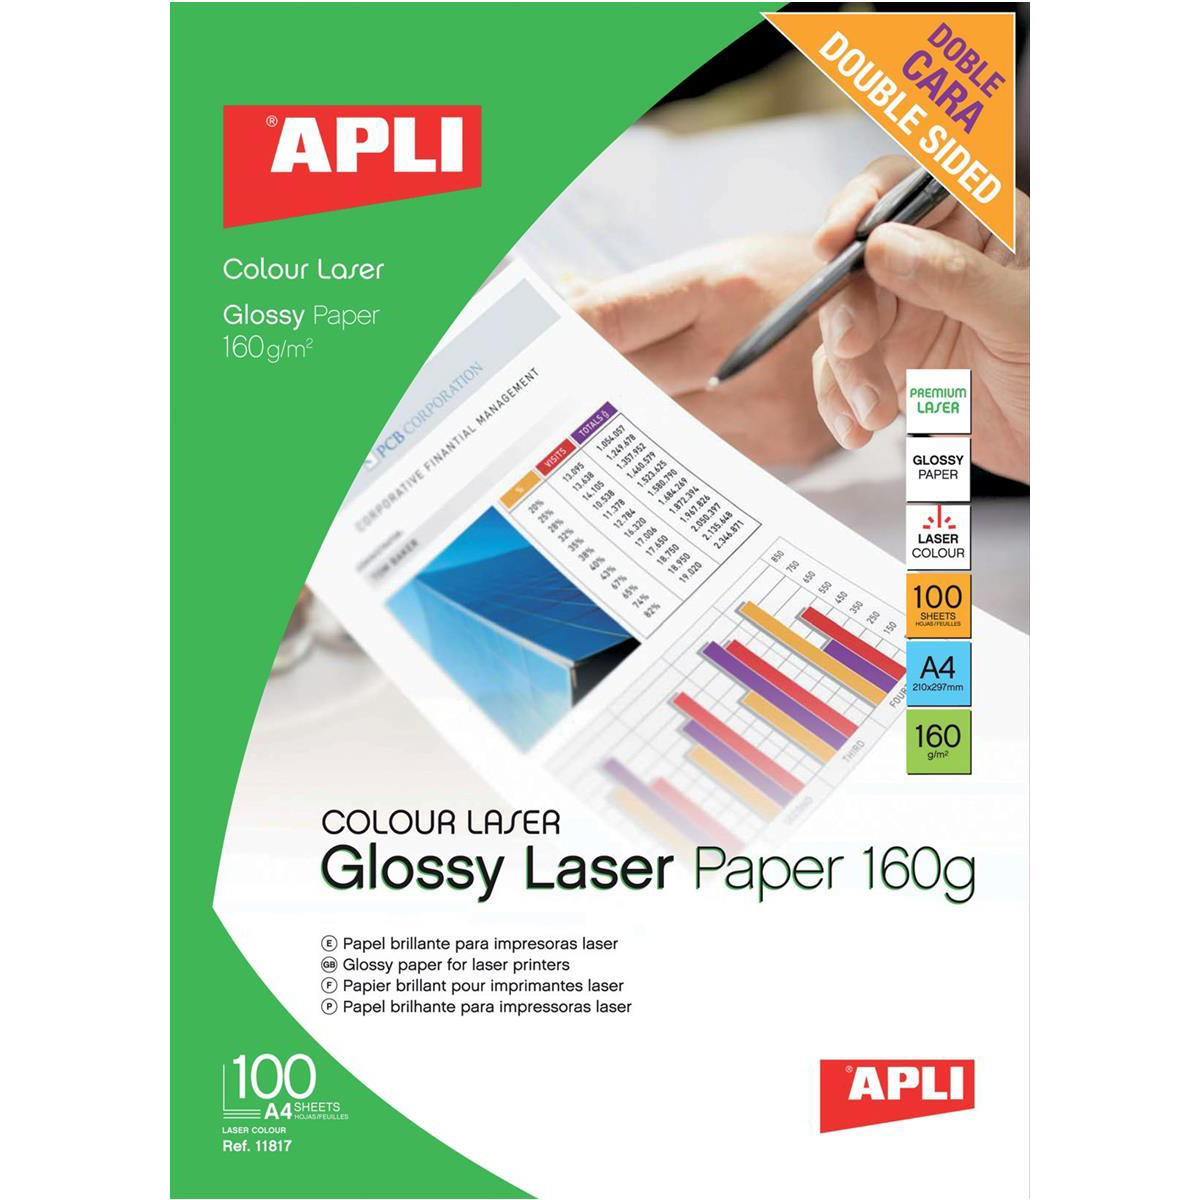 Photo Paper Apli Laser Paper Glossy Double-sided 160gsm A4 Ref 11817 100 Sheets